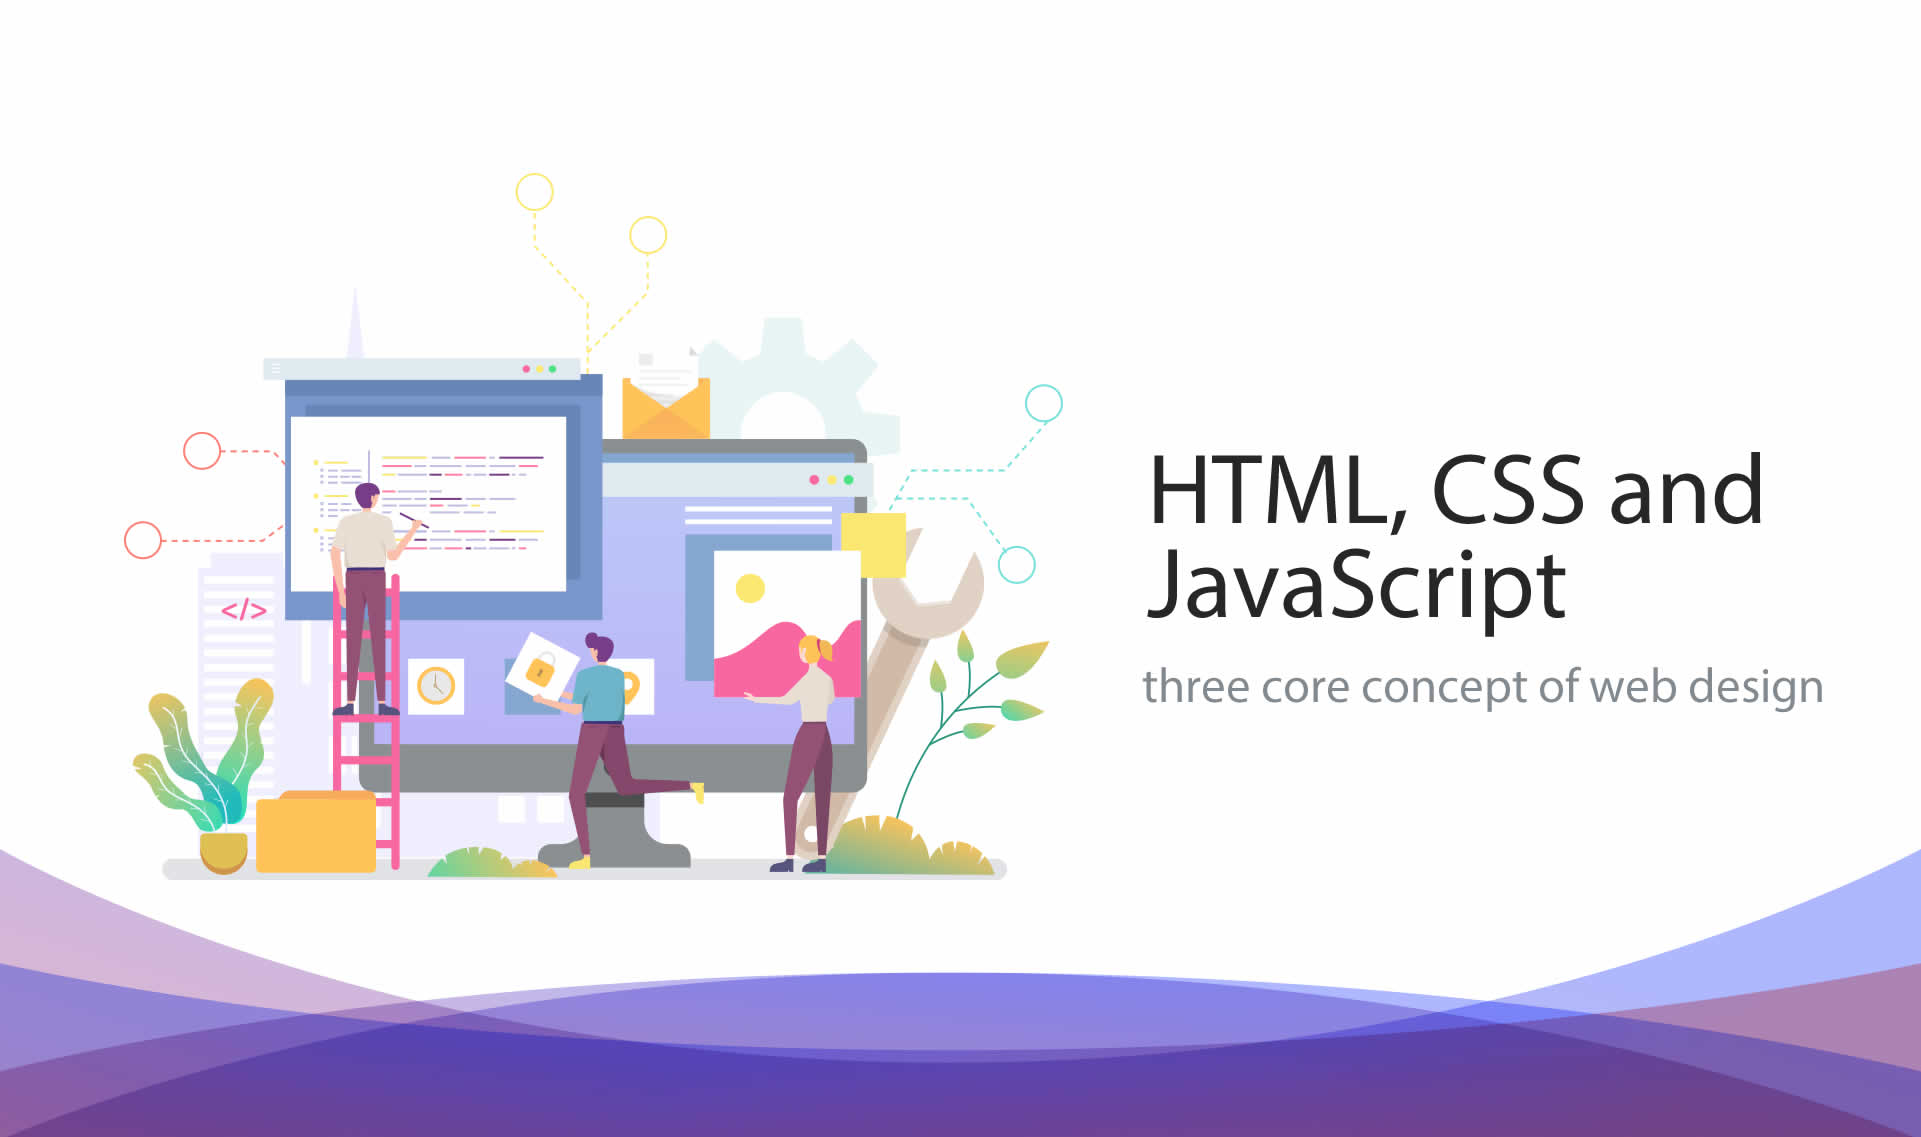 HTML, CSS and JavaScript, three core concept of web design